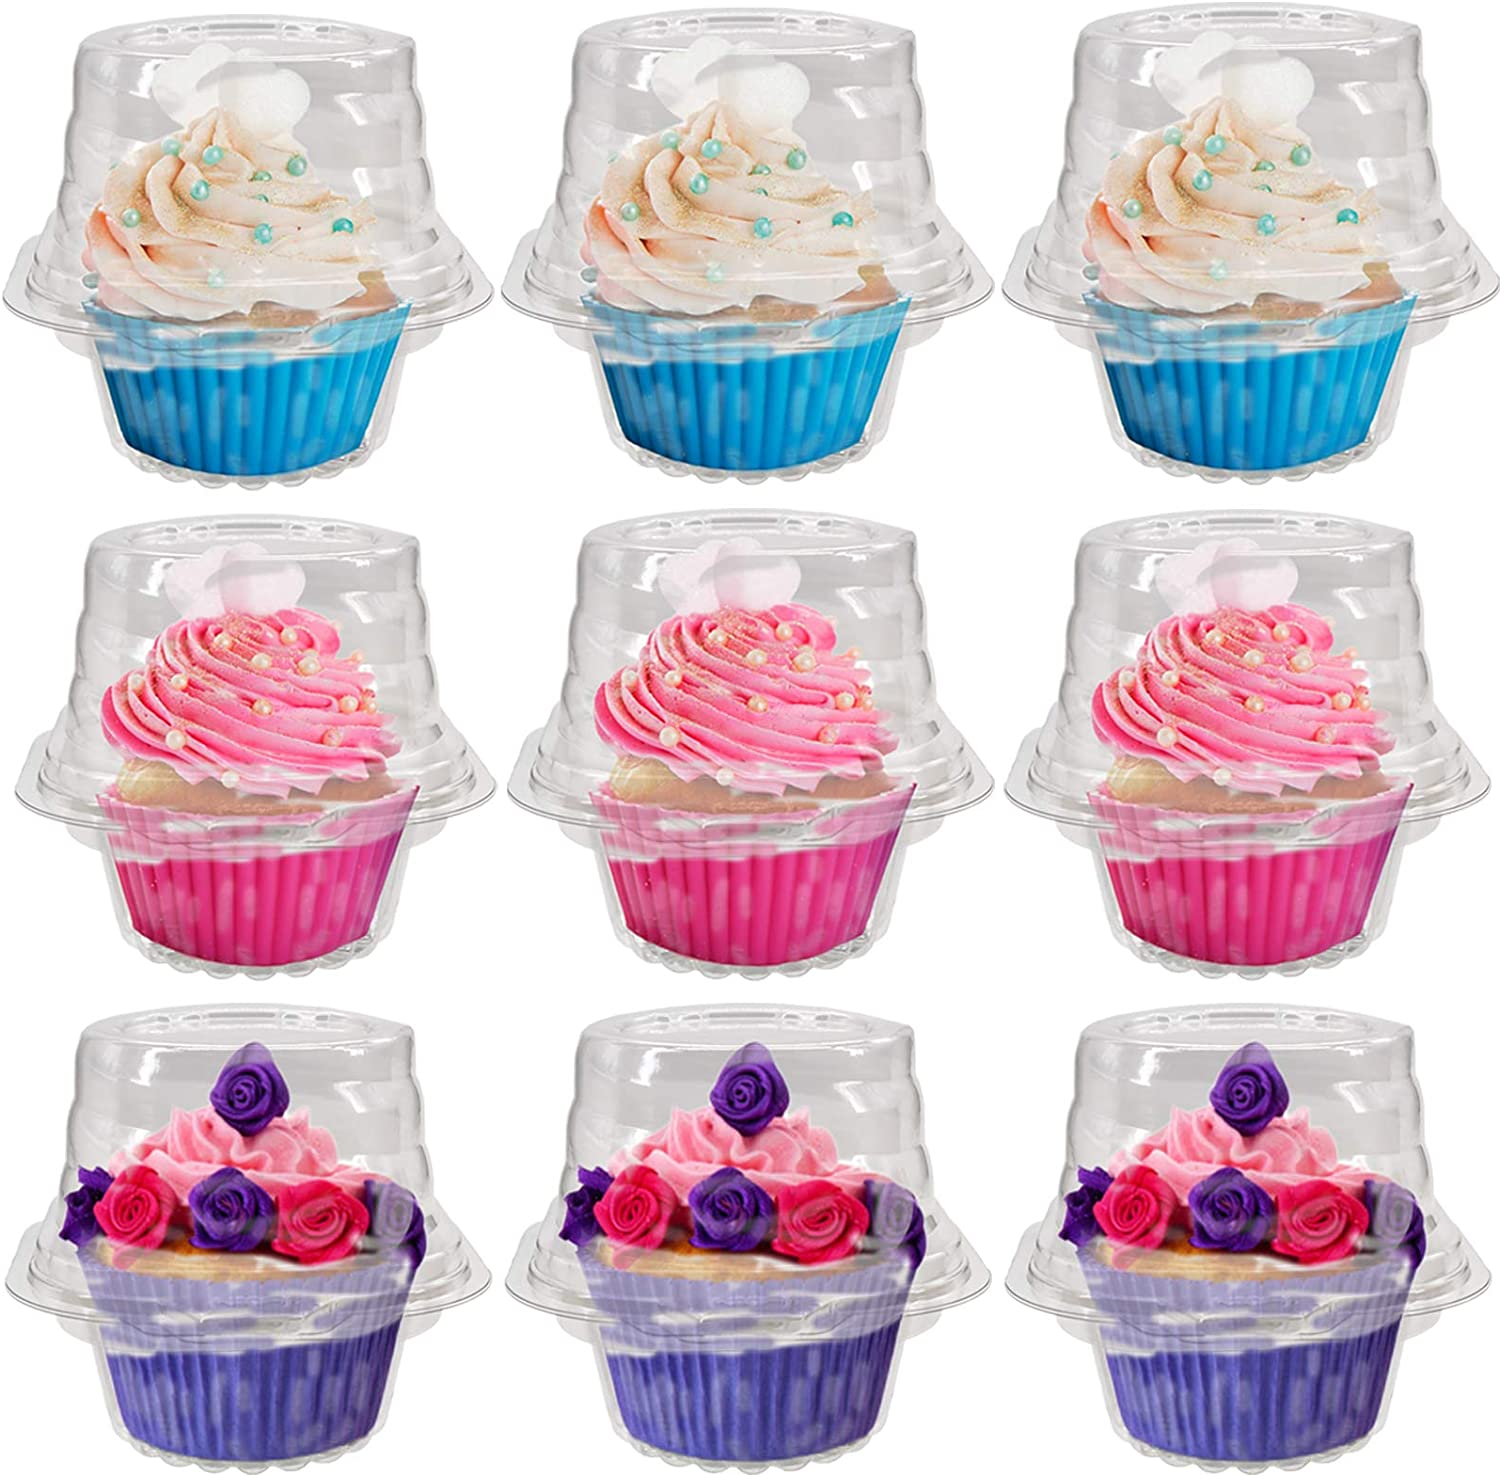 50 Pack Individual Cupcake Boxes, Connected Single Clear Plastic Cupcake Containers Disposable with Cake Dome, For Home, Cake Shop Party Use Muffin Cake Dessert Fruit Hamburgers Cupcake Holder.